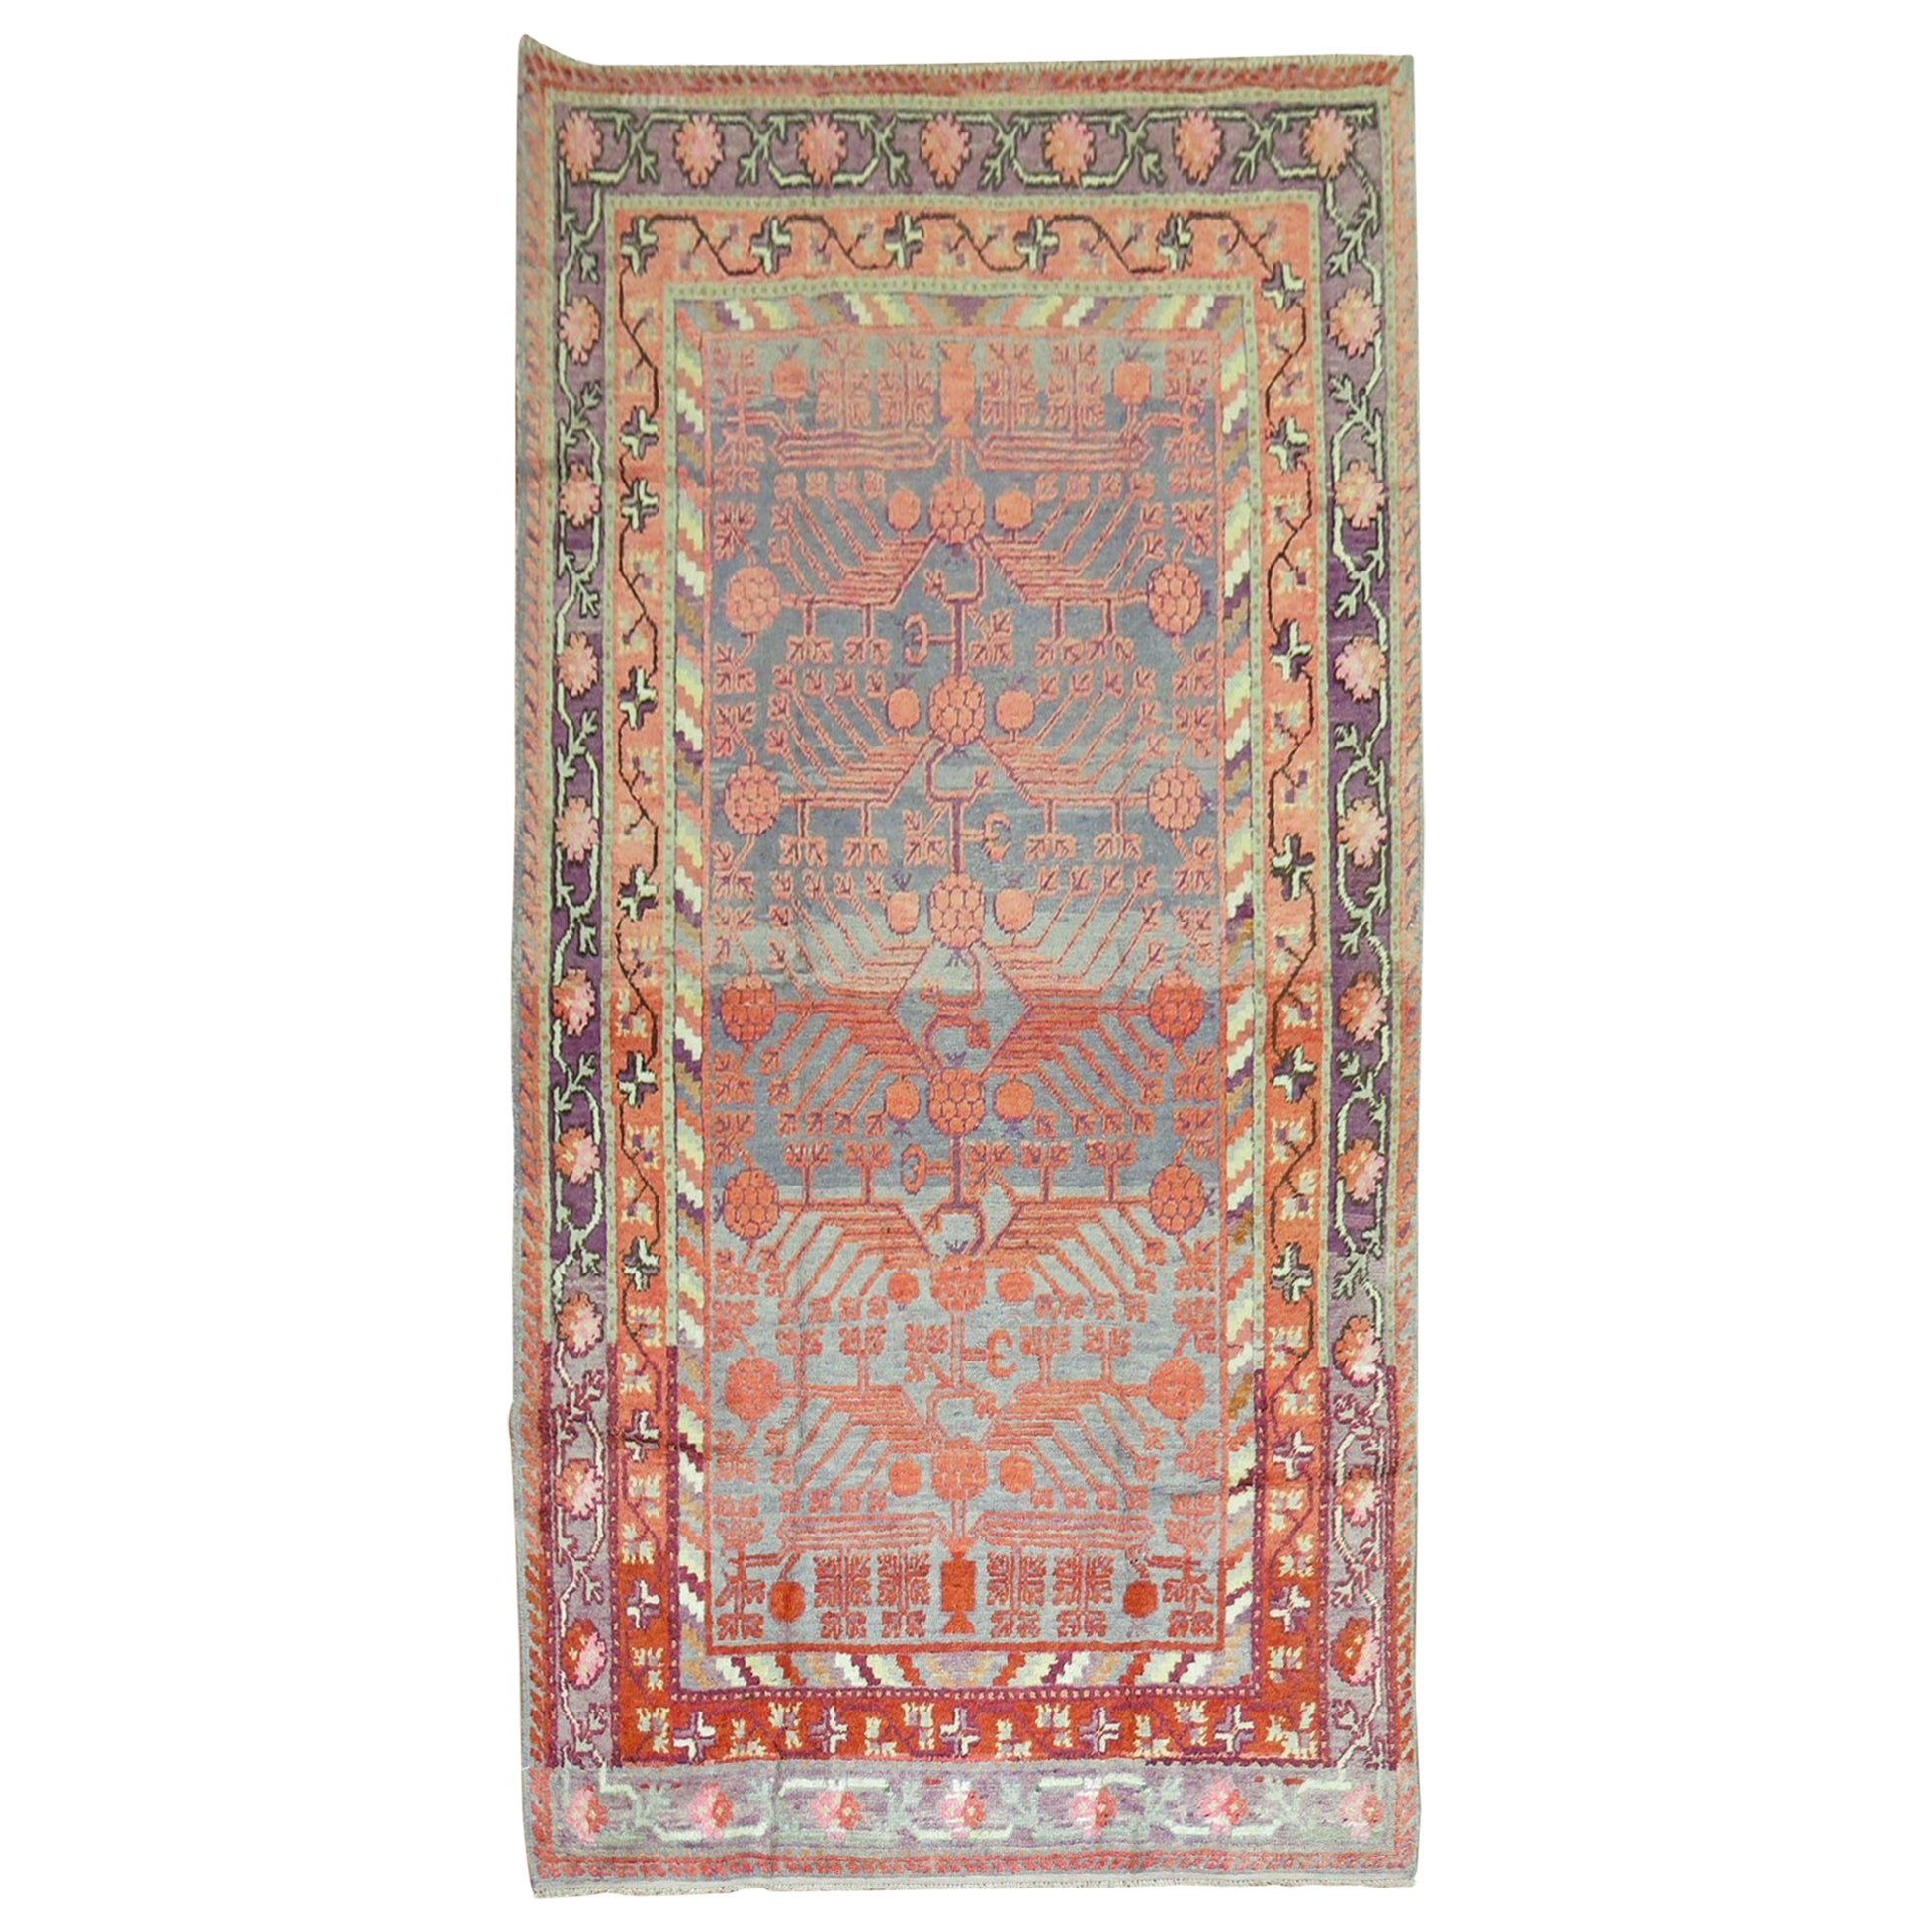 Early 20th Century Khotan Wool Gray Field Antique Pomegranate Rug